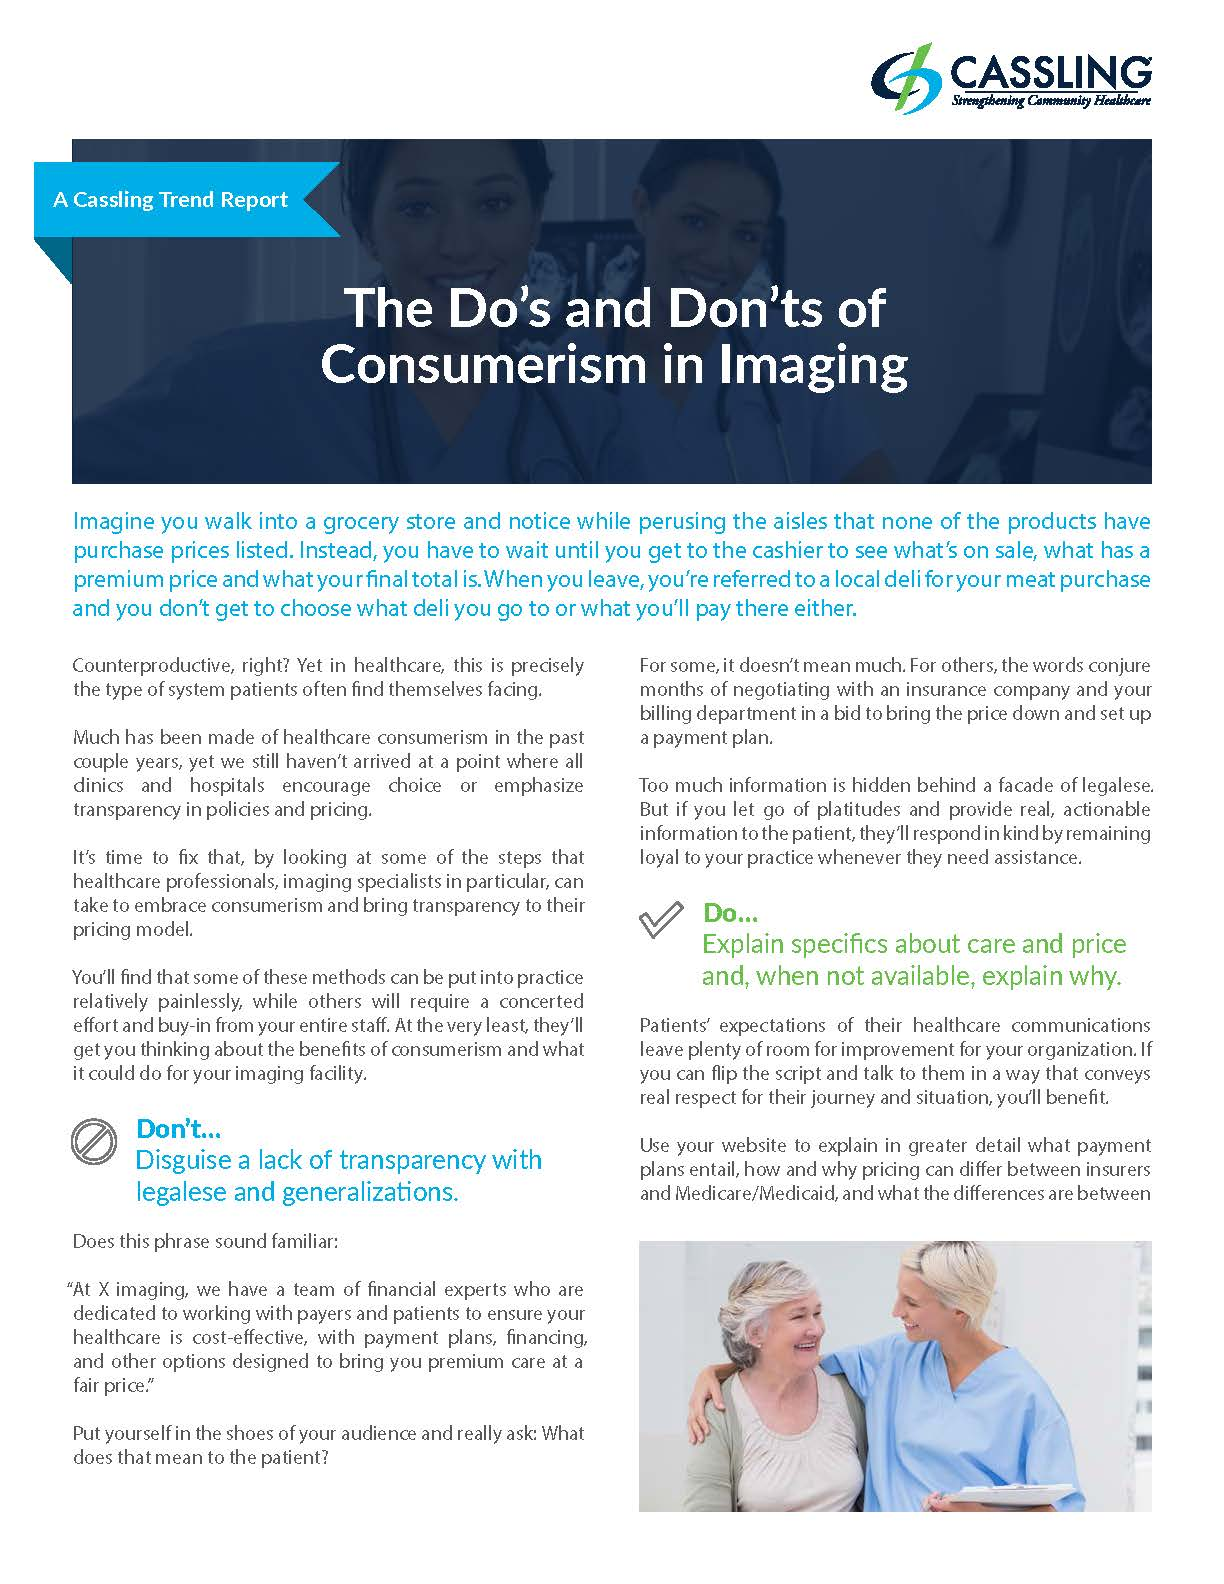 Do's-Don'ts-Consumerism-Imaging-TrendReport Cover.jpg